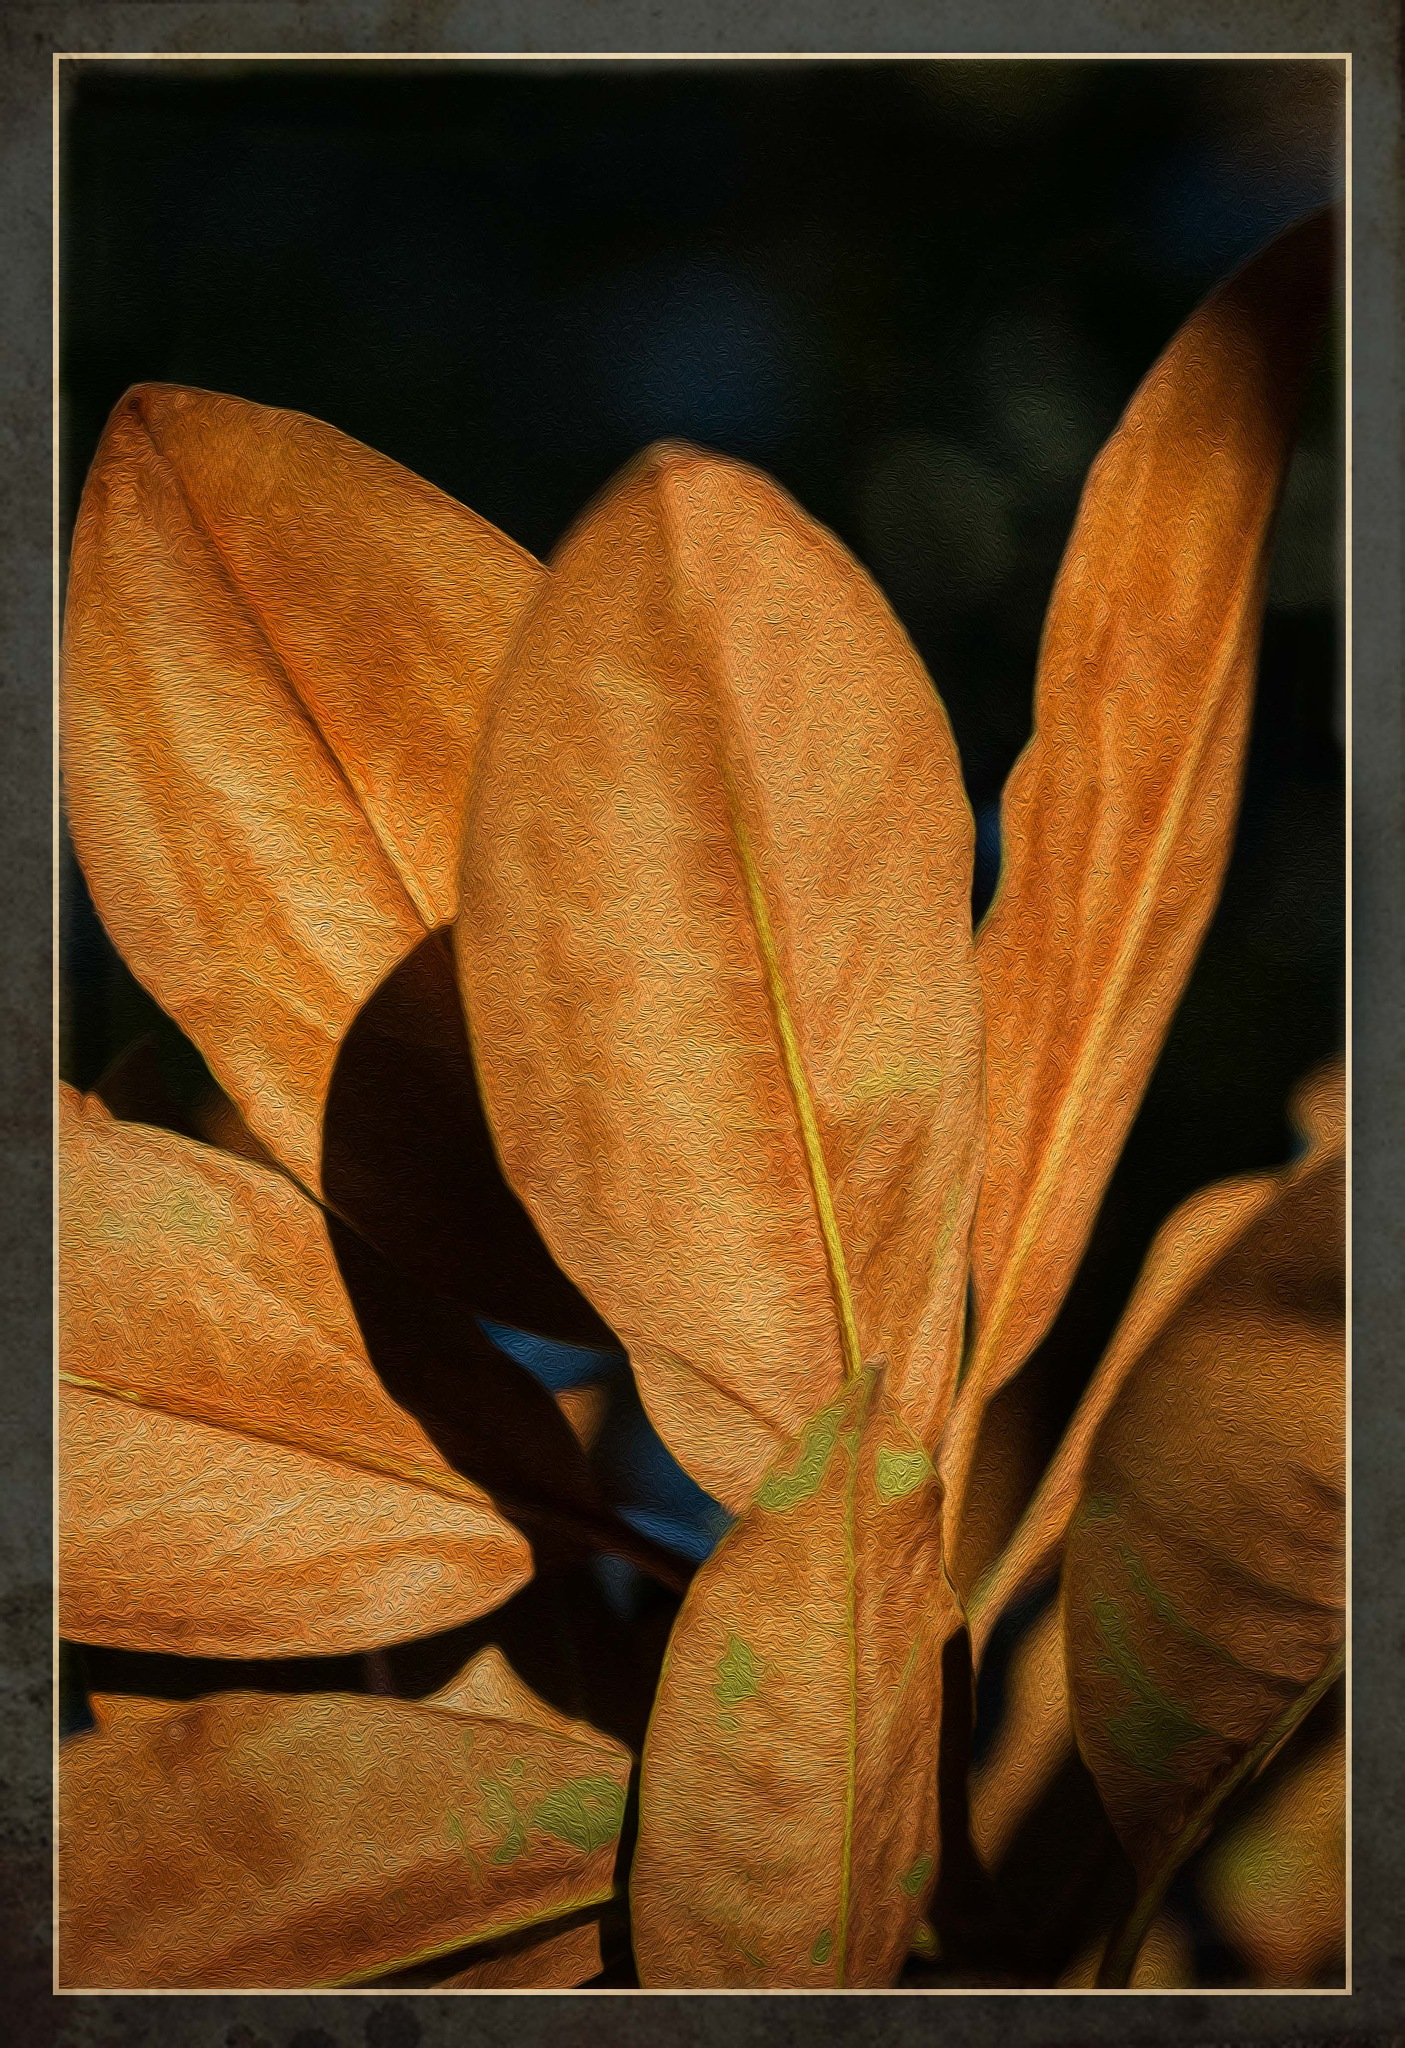 Golden Leaves by Bronwynne Kidson